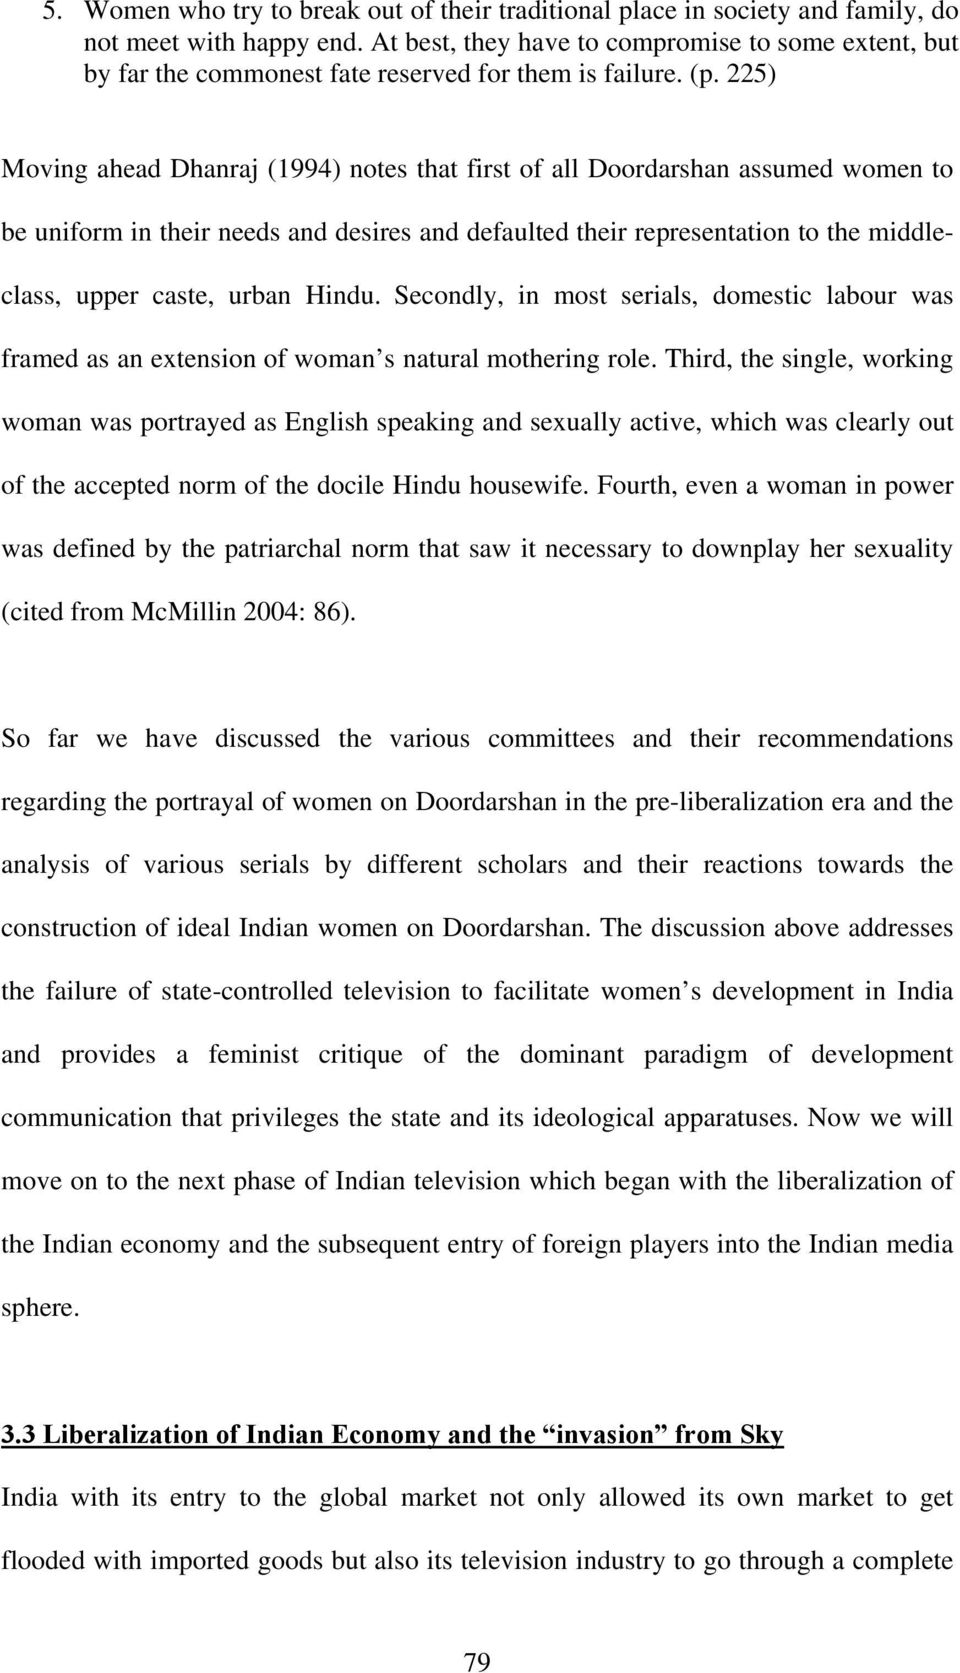 225) Moving ahead Dhanraj (1994) notes that first of all Doordarshan assumed women to be uniform in their needs and desires and defaulted their representation to the middleclass, upper caste, urban